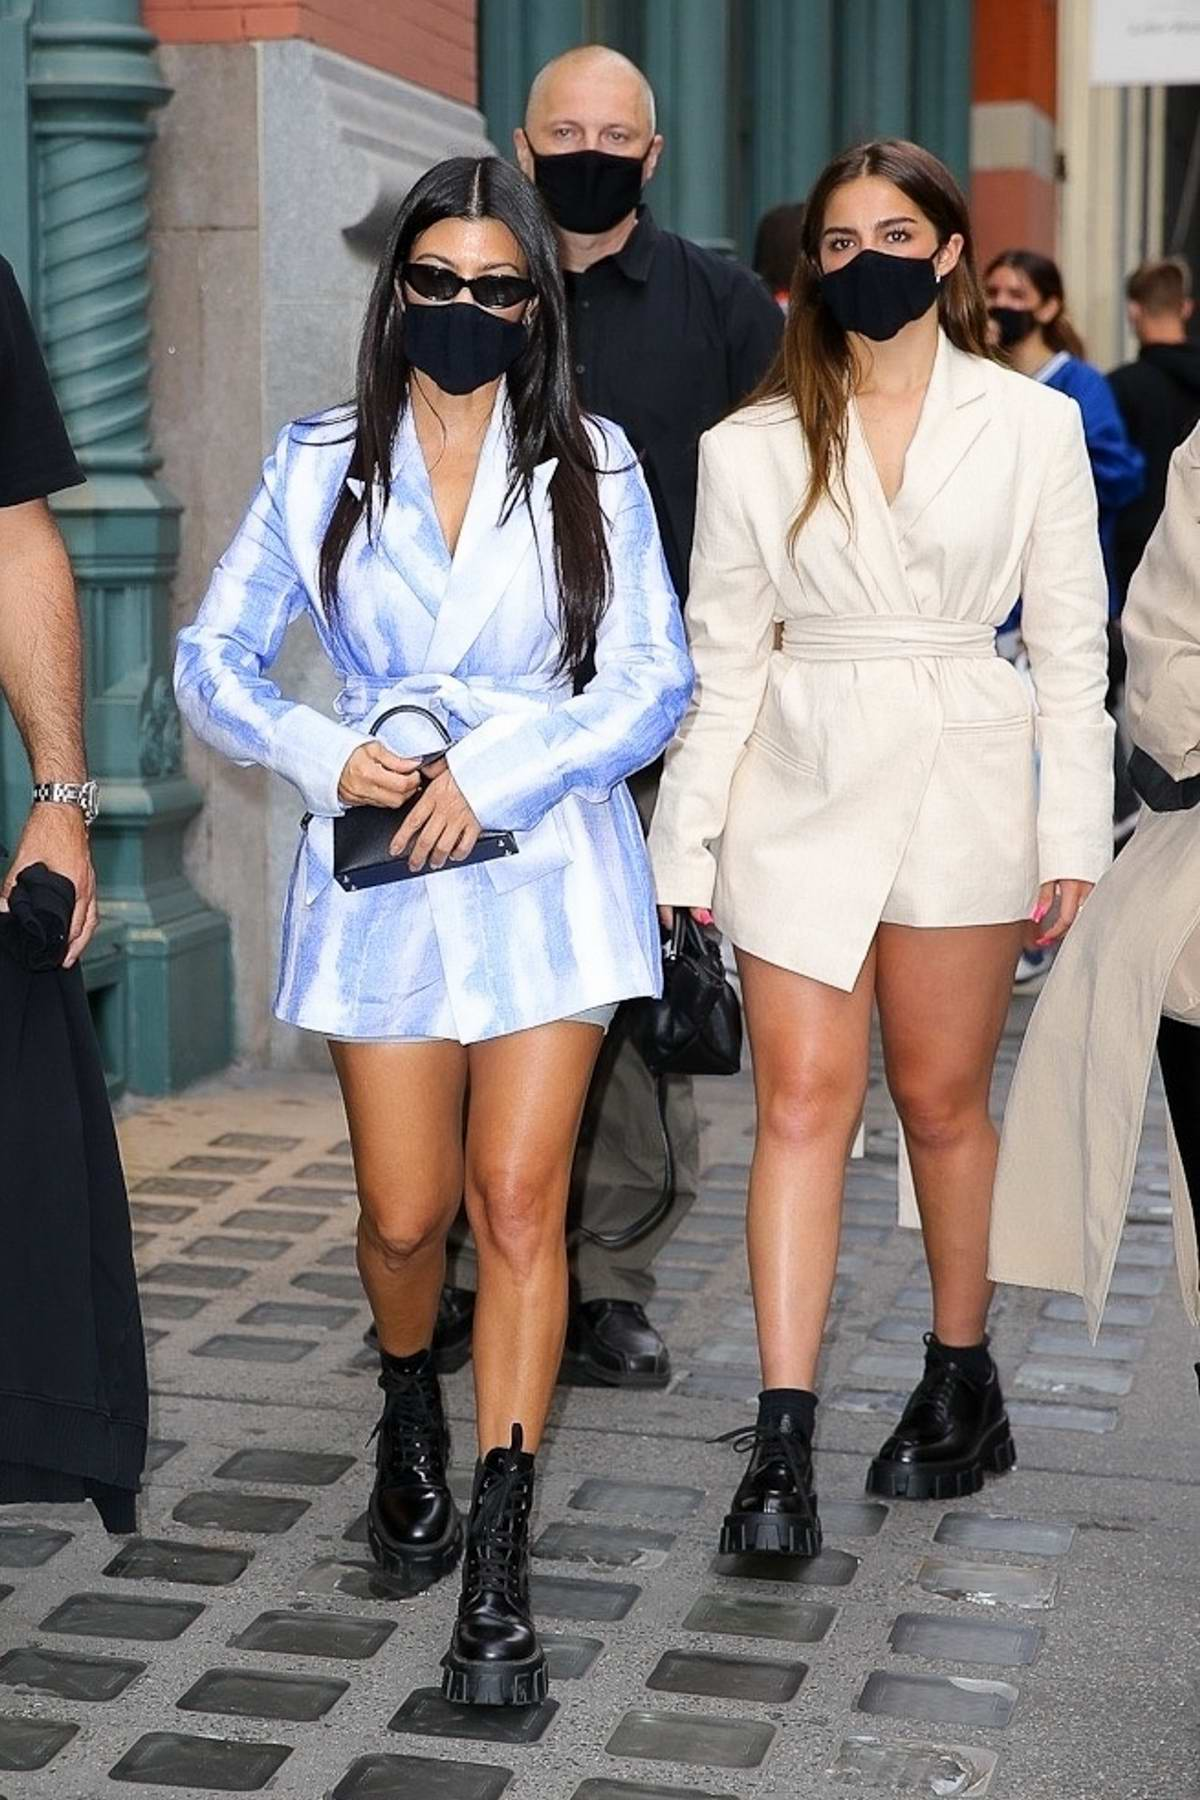 Addison Rae and Kourtney Kardashian step out for shopping in downtown Manhattan, New York